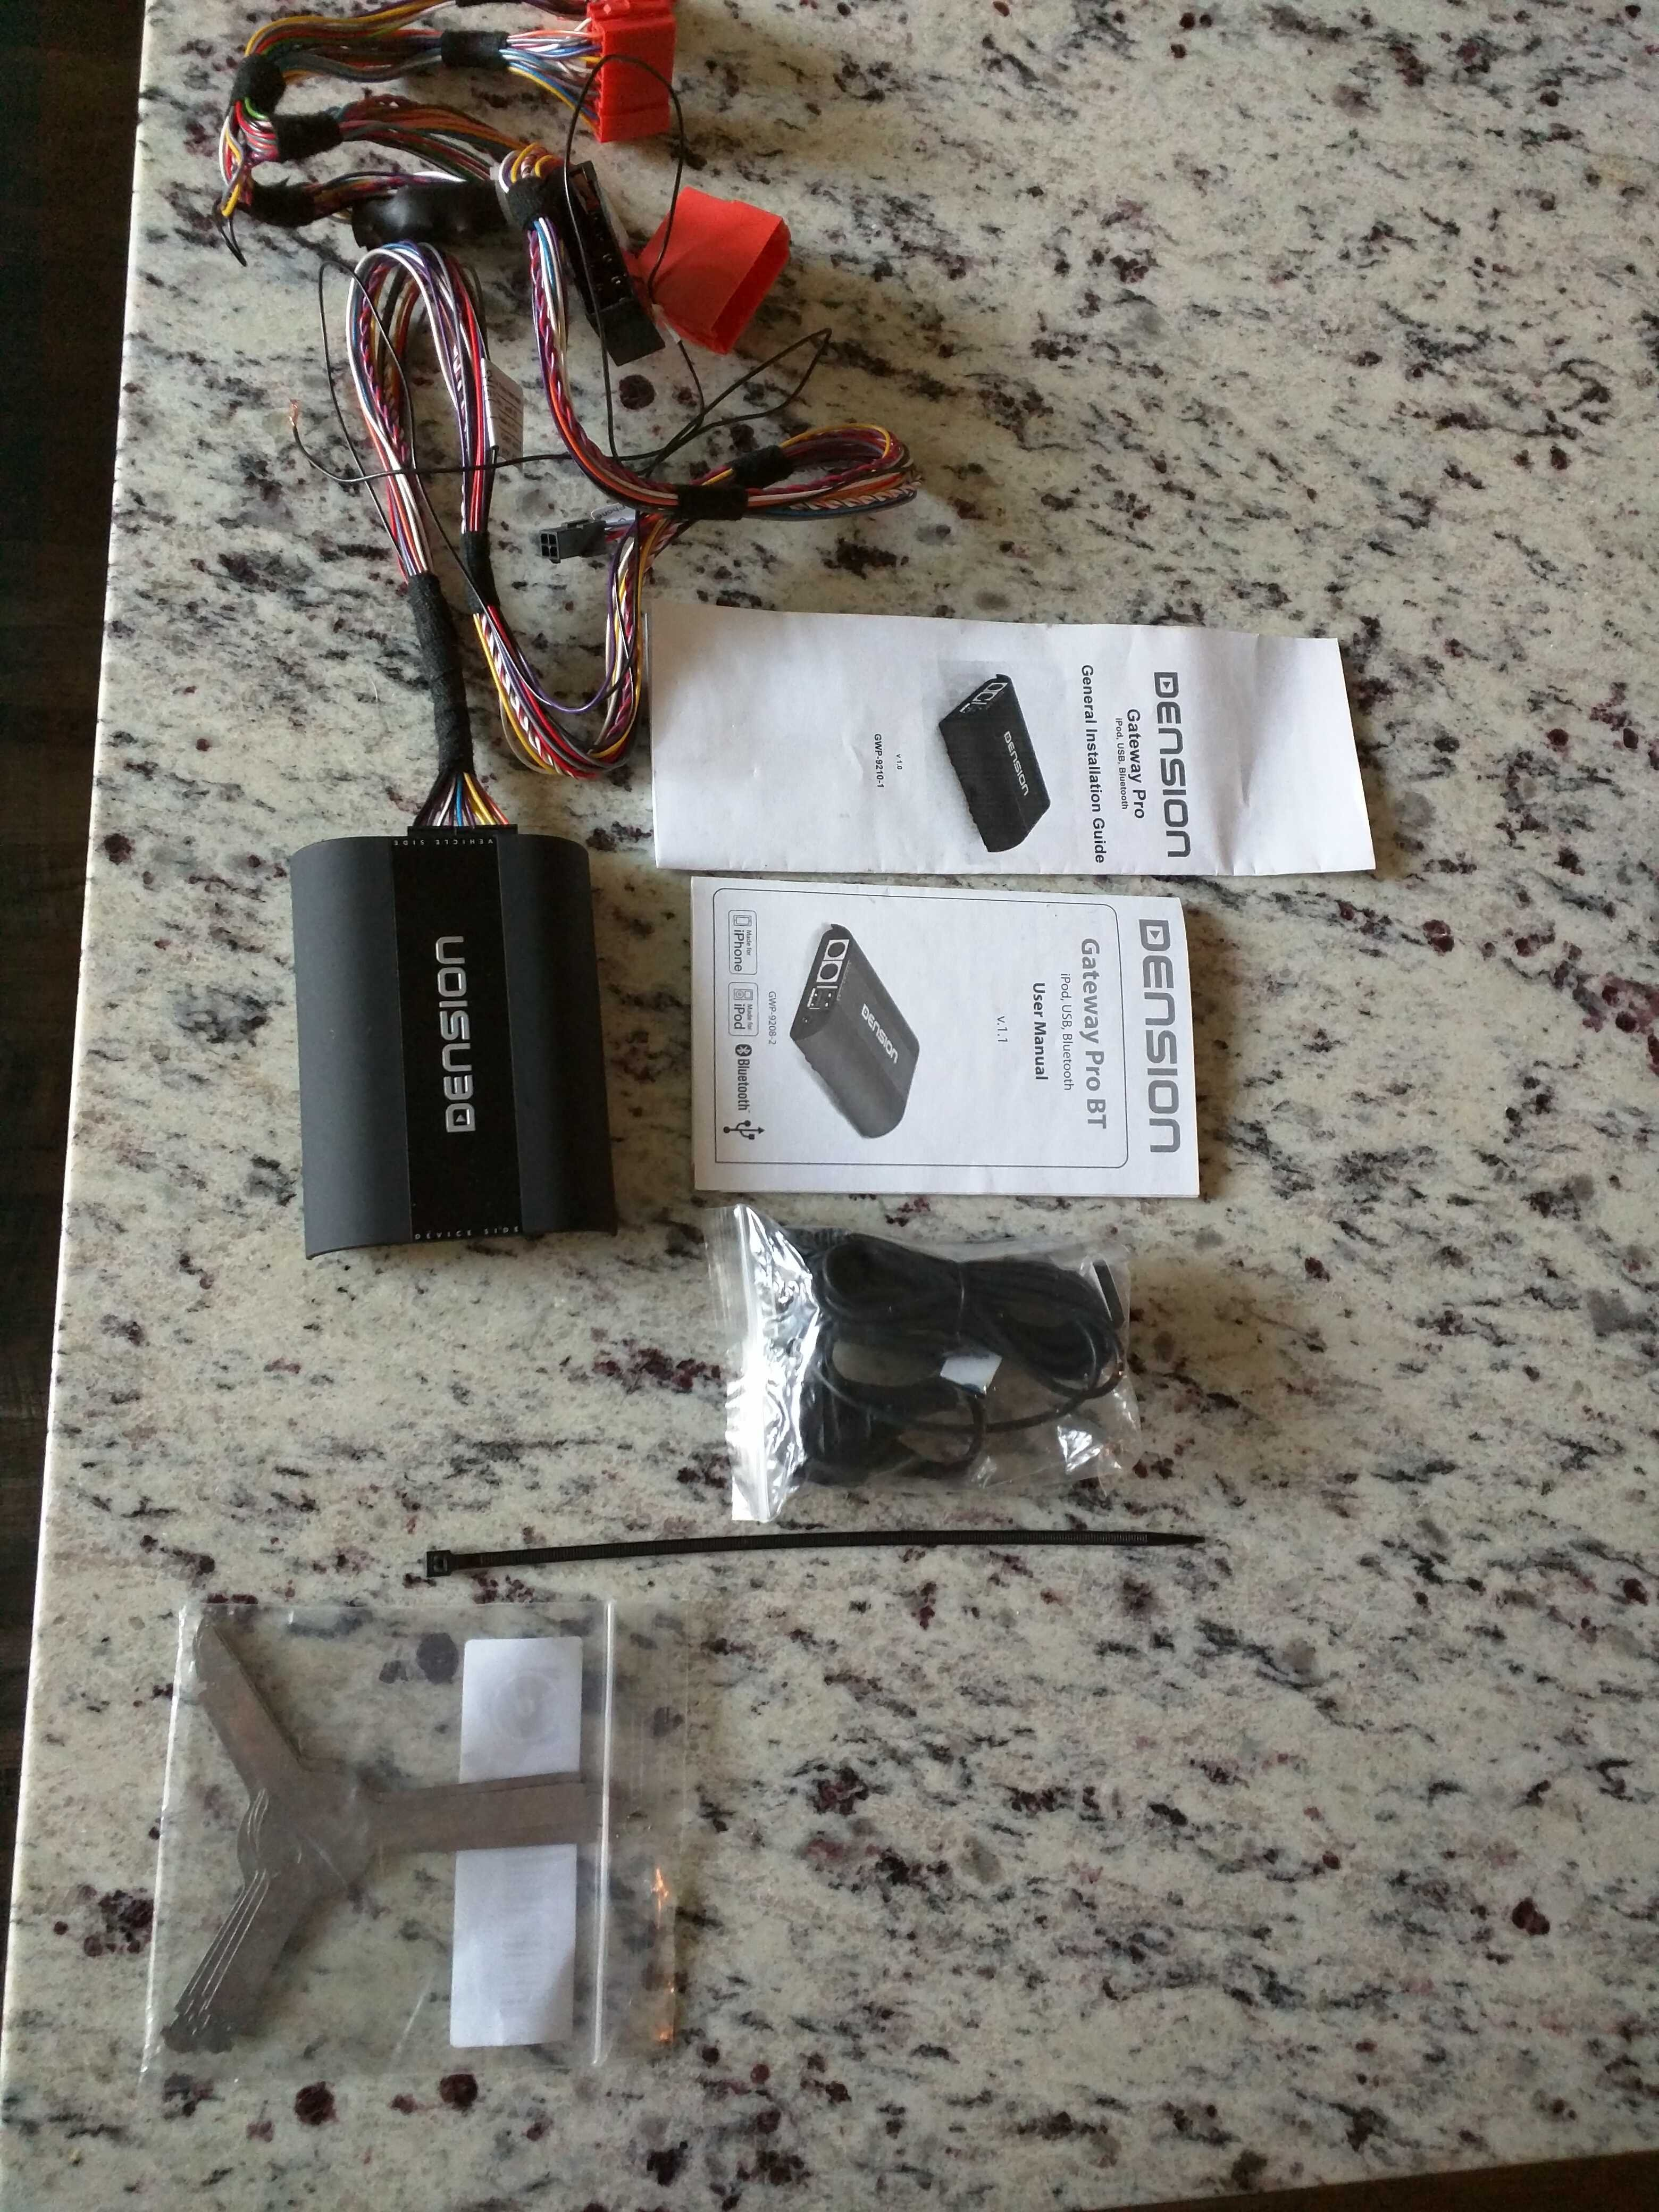 For Sale: Ross-Tech HexCan and Dension BT Gateway